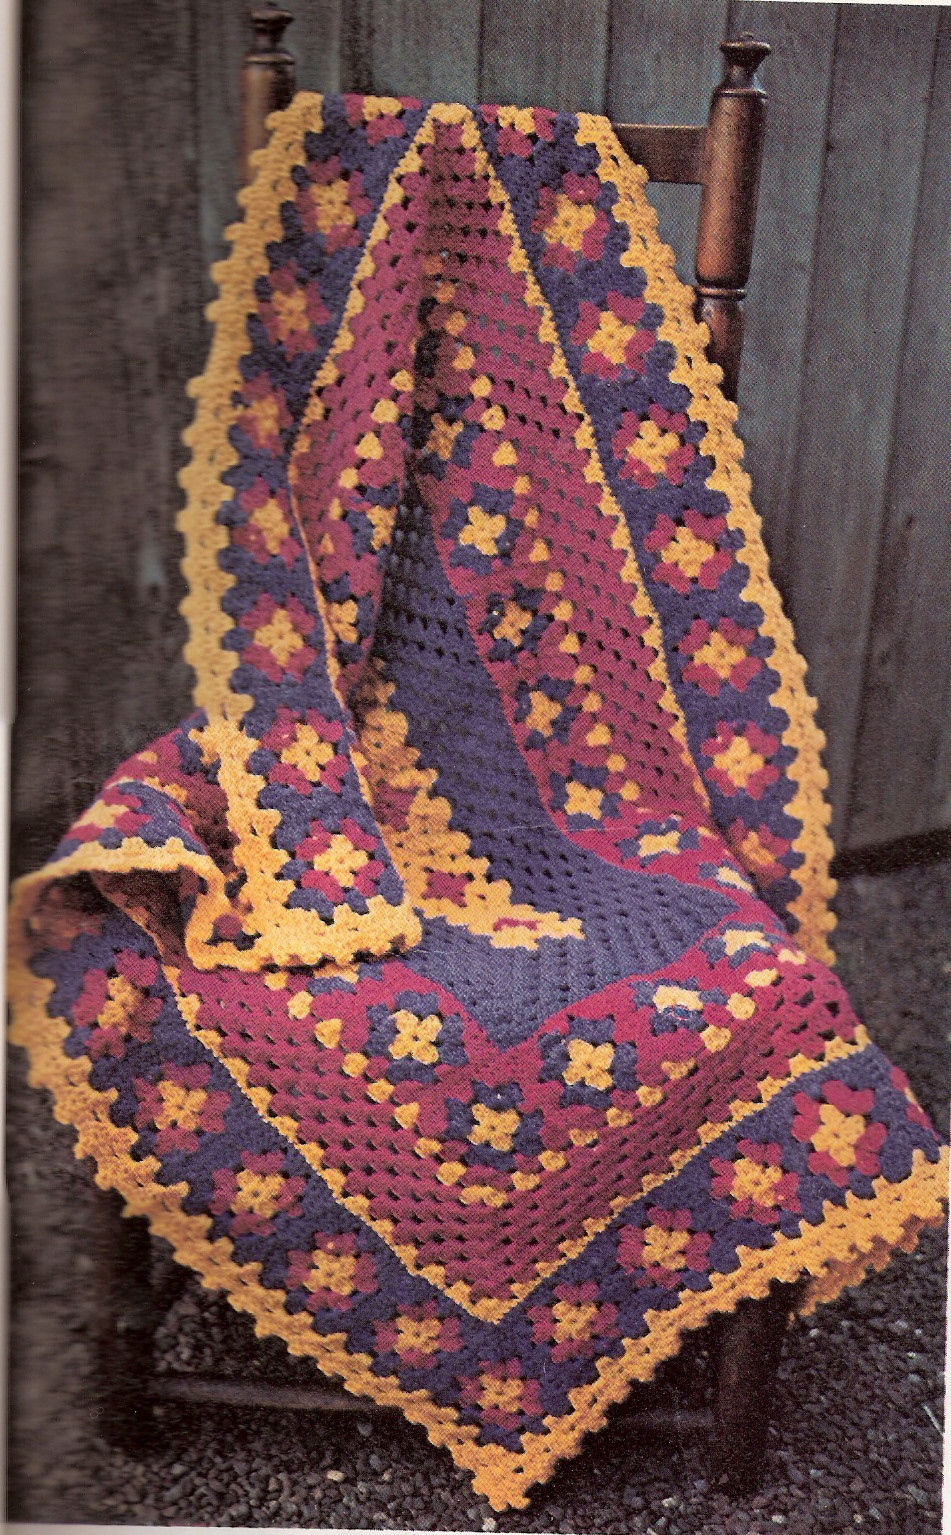 Afghan Blanket Inspirational Granny Square Crib Afghan Of Amazing 48 Photos Afghan Blanket